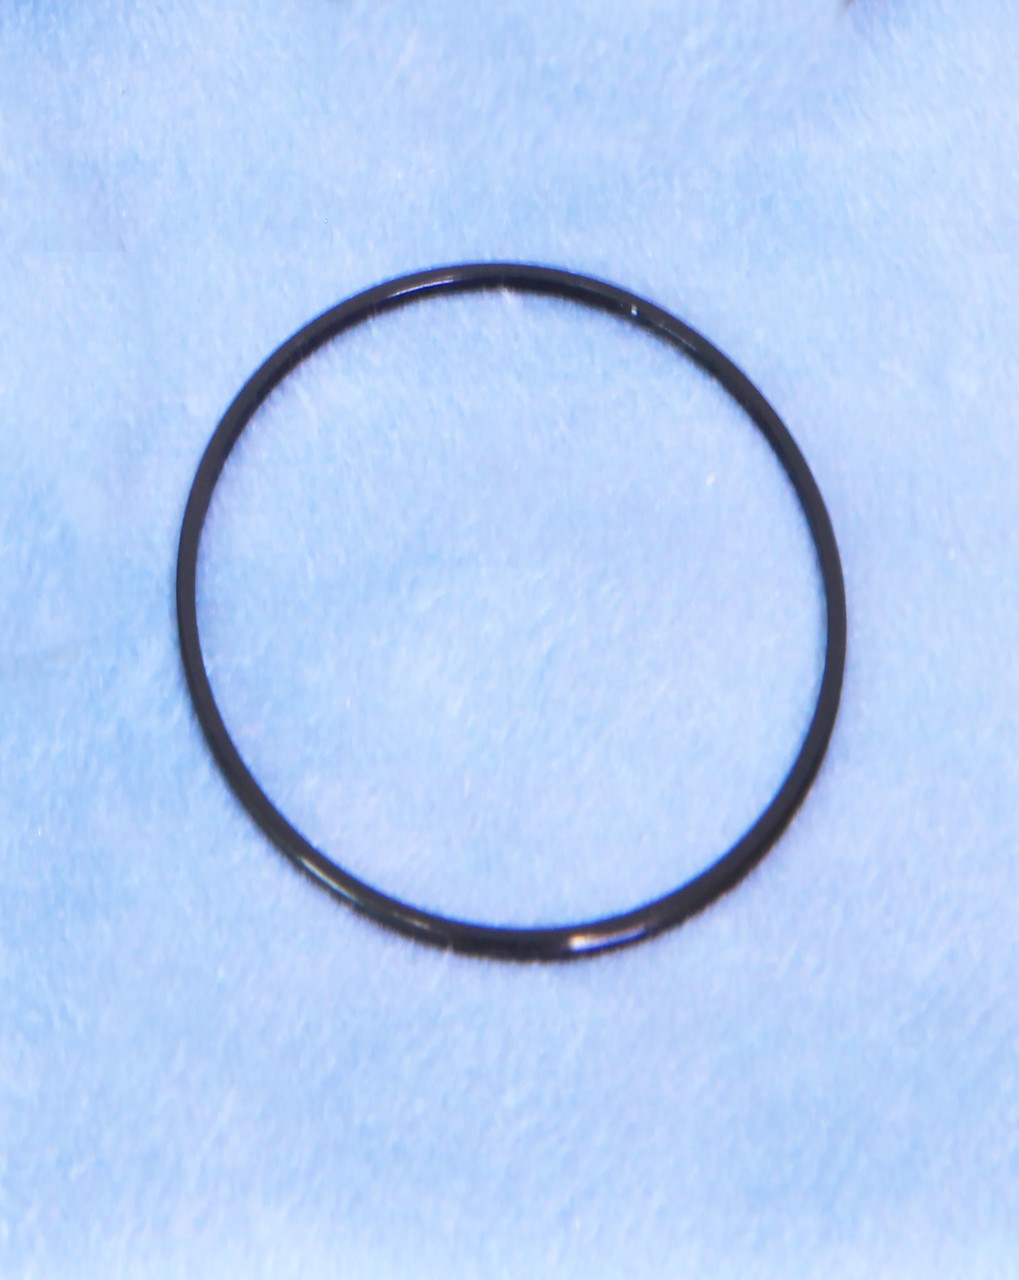 SFE-M48-0.50 -- 48 mm Spacer Ring - 0.05 mm Thick